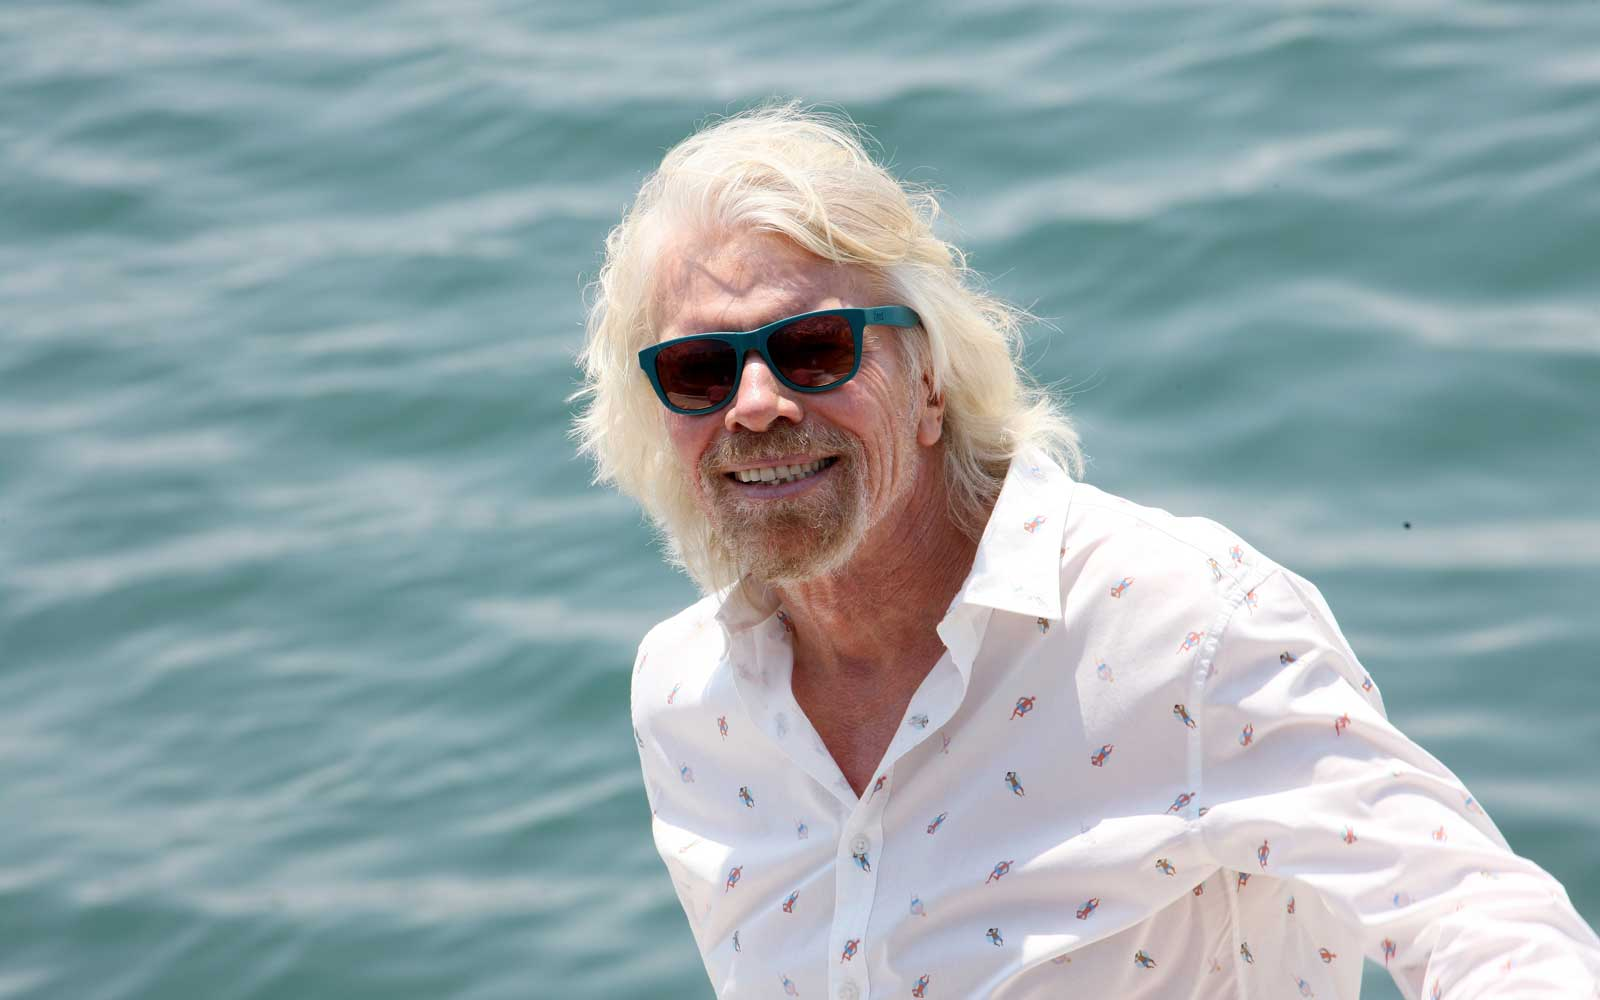 Richard Branson Just Announced Details About the First Virgin Cruise Ship